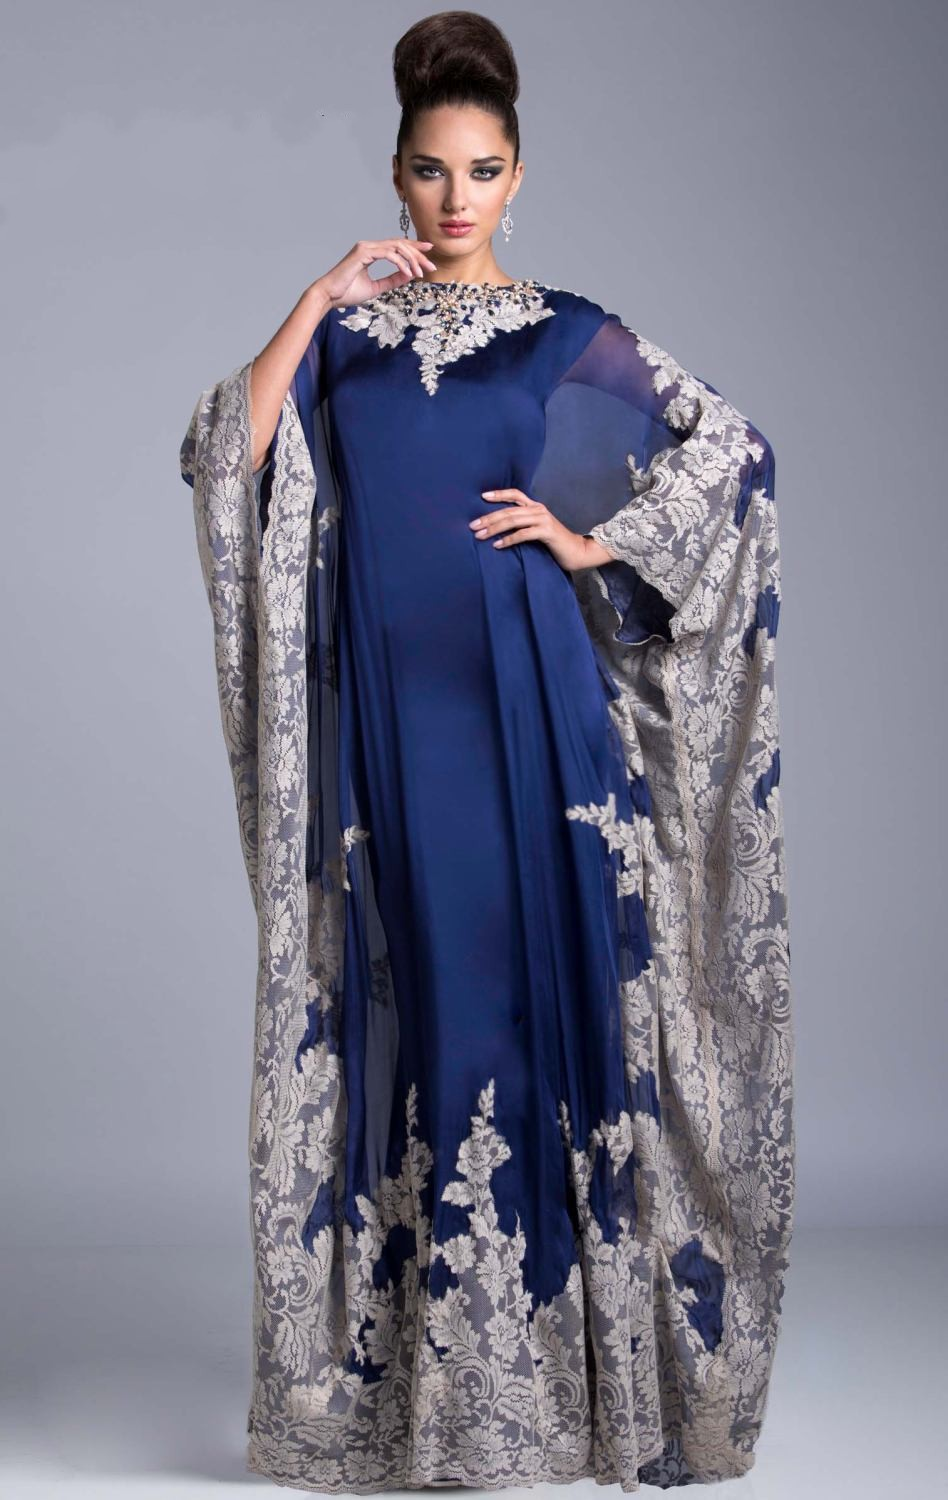 Custom Made Real Samples Arabic Kaftan Royal Blue Evening Prom Gown 2018 Embroidery Dubai Chiffon Mother Of The Bride Dresses